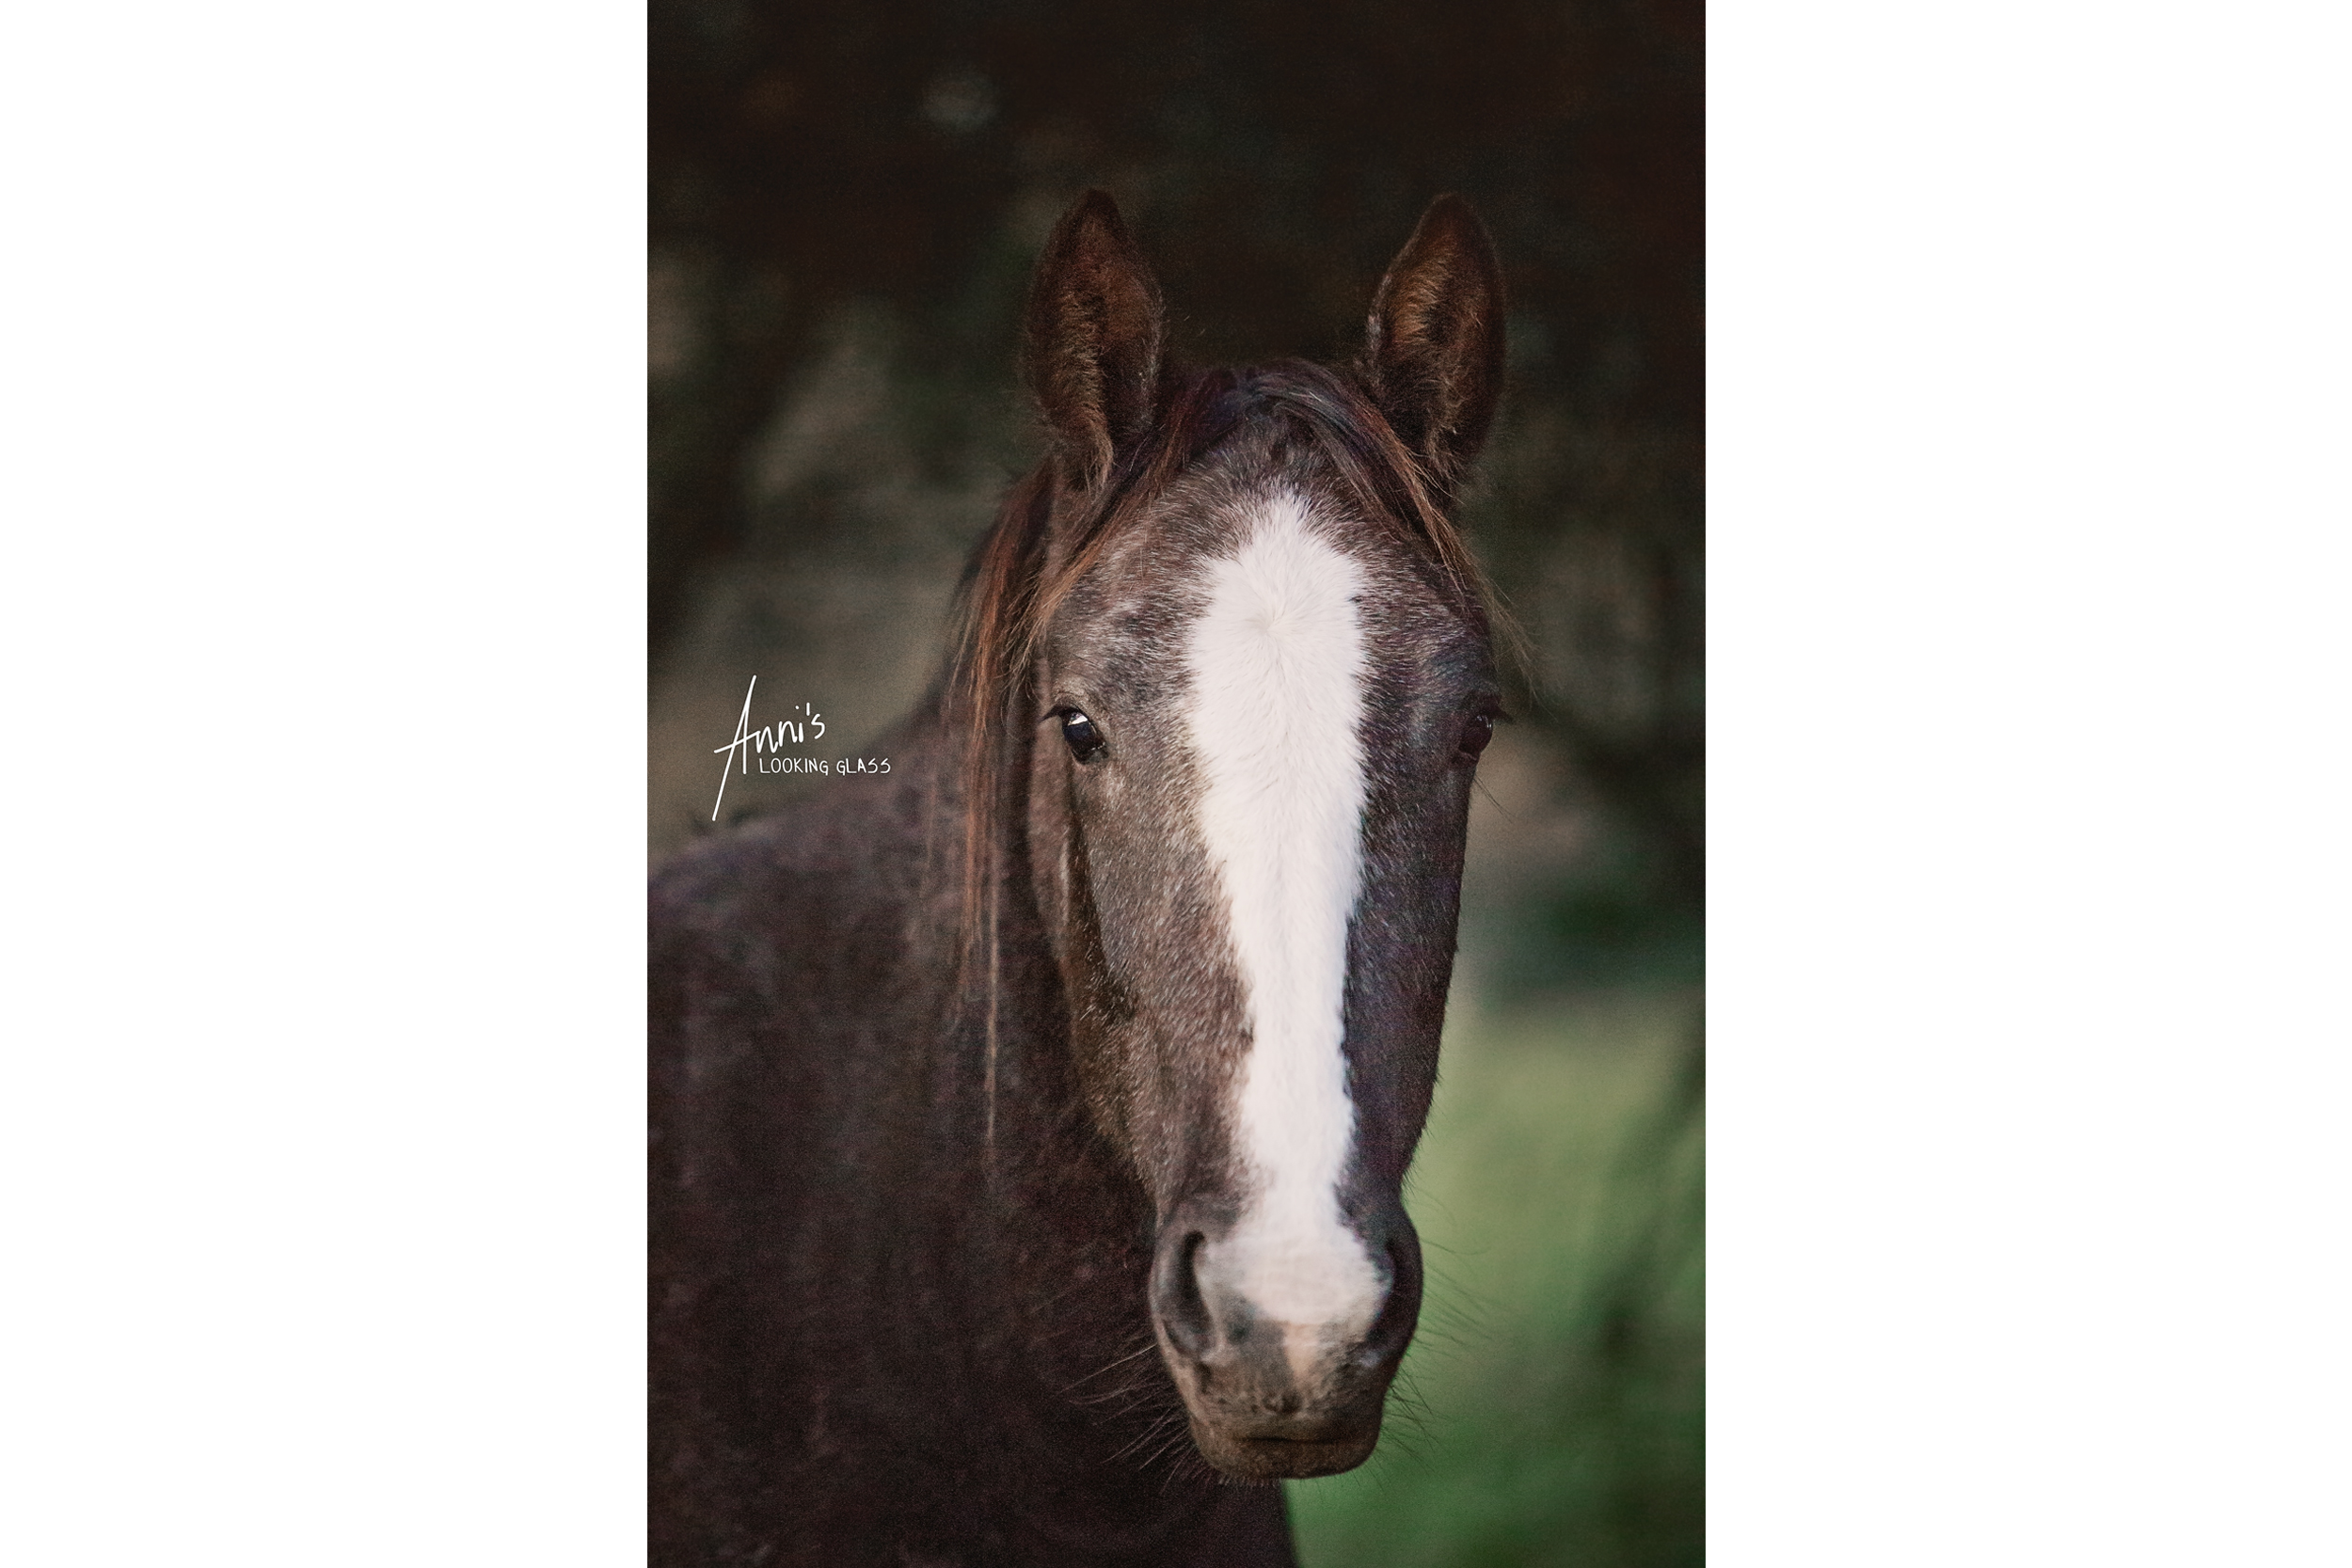 A brown horse with a white blaze looking attentively at the camera